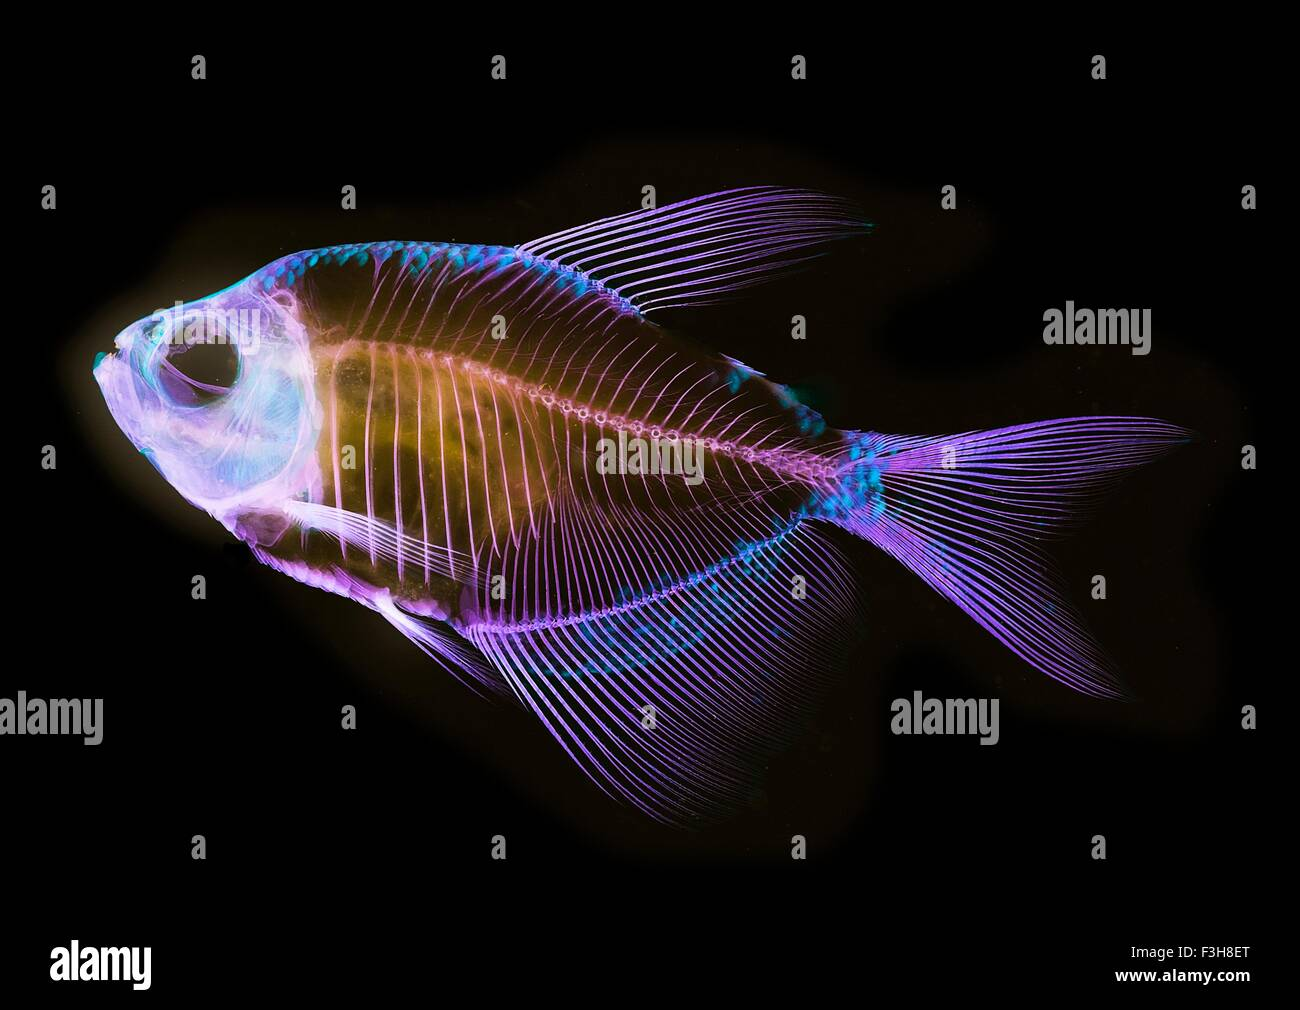 Alizarin bone stain anatomical fish skeleton preparation of a white finned tetra stock image